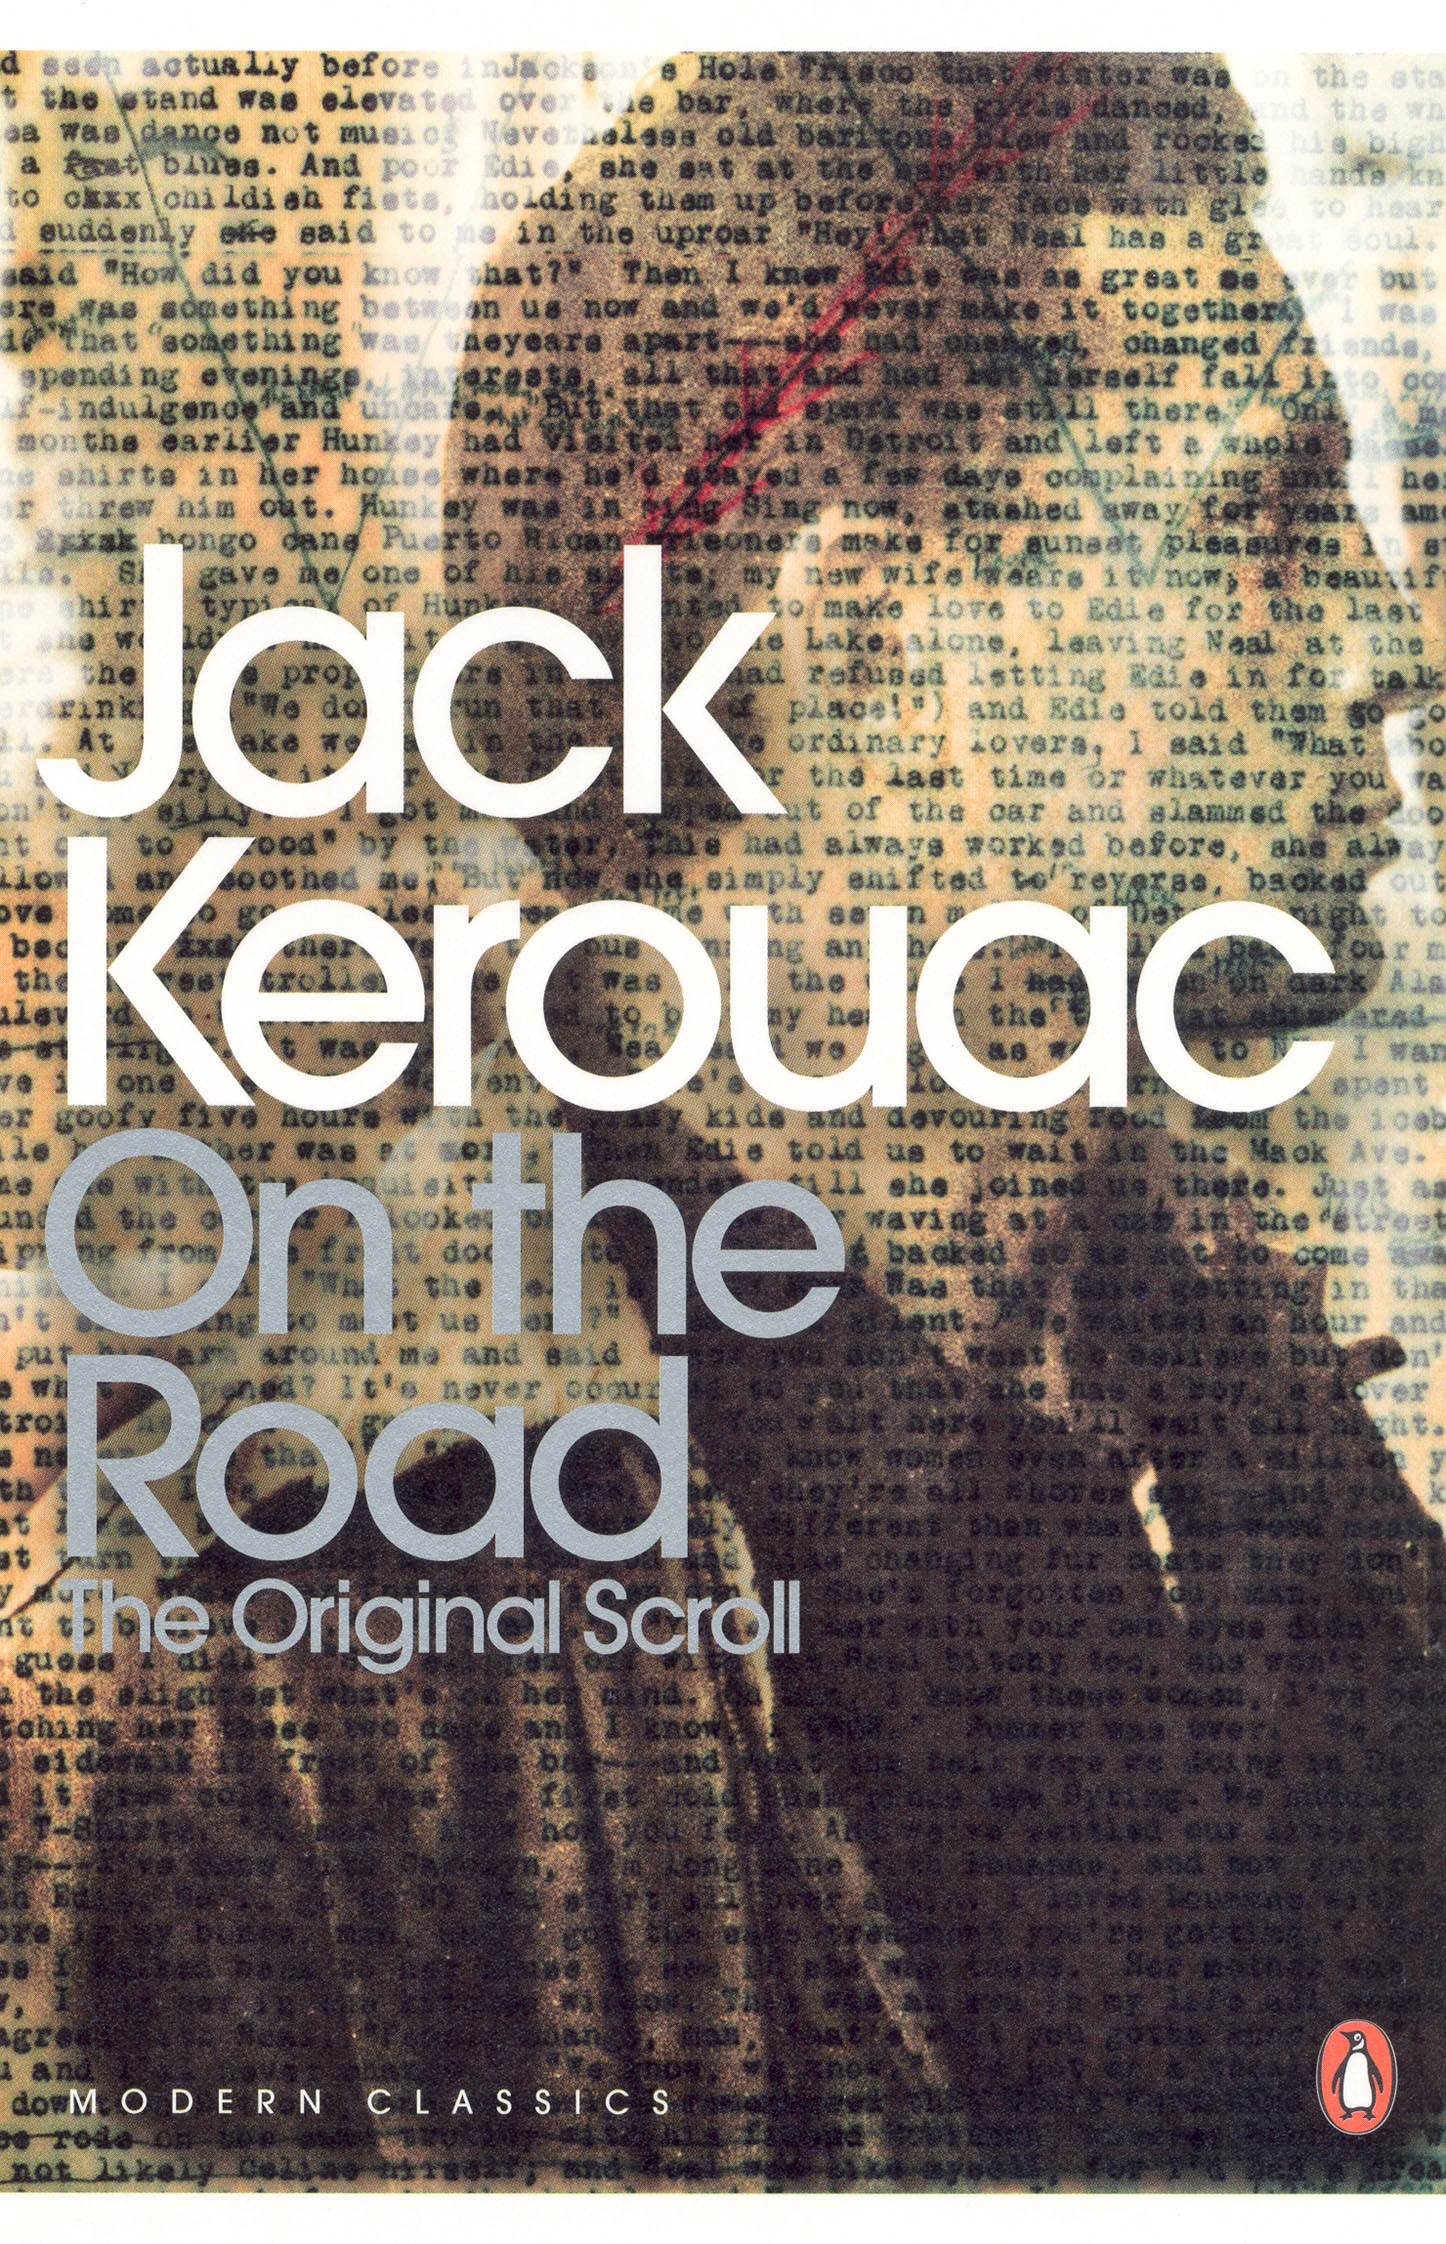 76. On the Road by Jack Kerouac (1957)